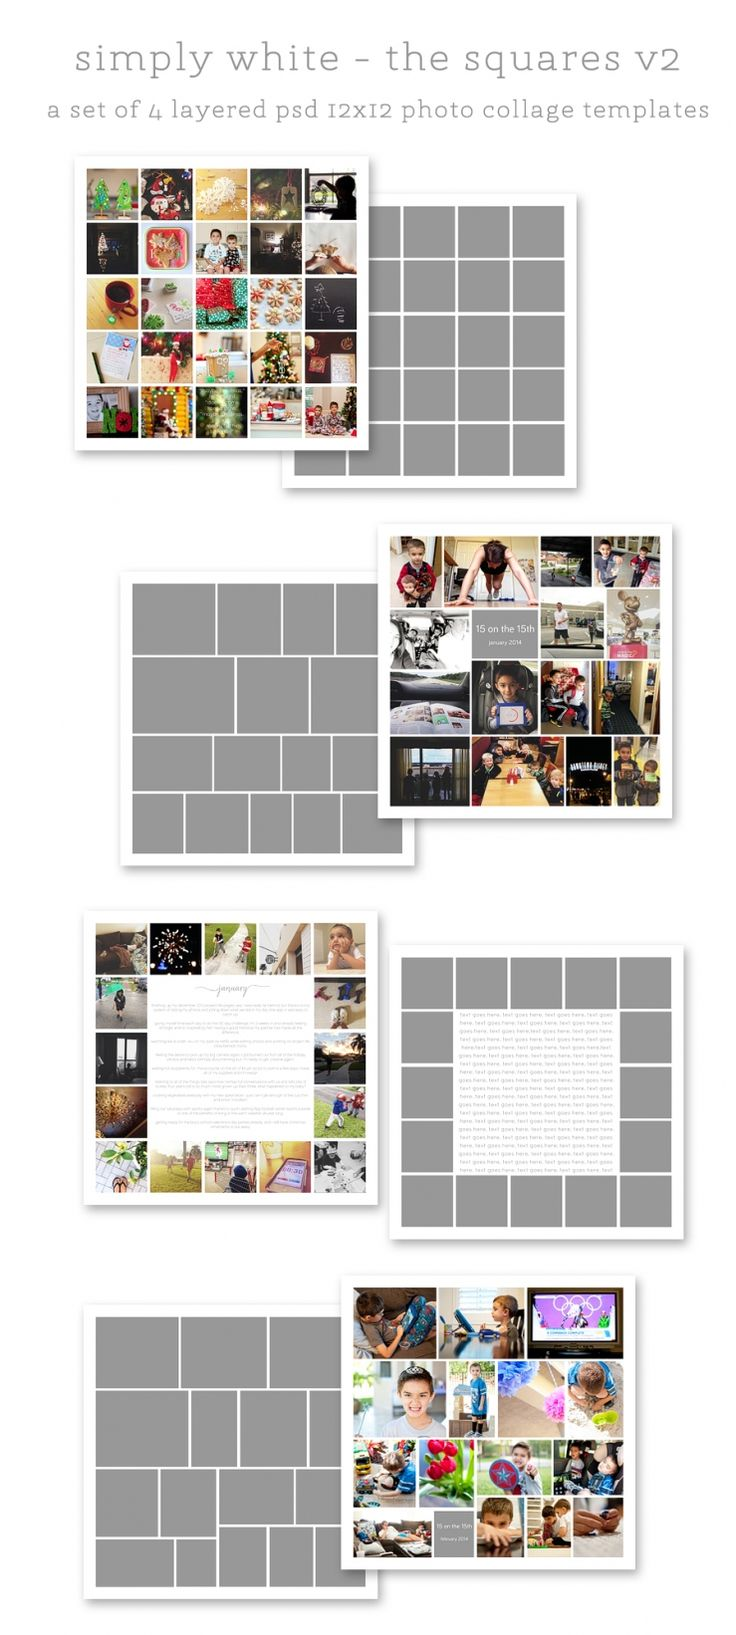 simply white squares v2 + v2r rounded 12x12 photo collage templates | page layout ideas + inspiration for digital project life, modern memory keeping, pocket scrapbooking ===> hellotracylarsen.com